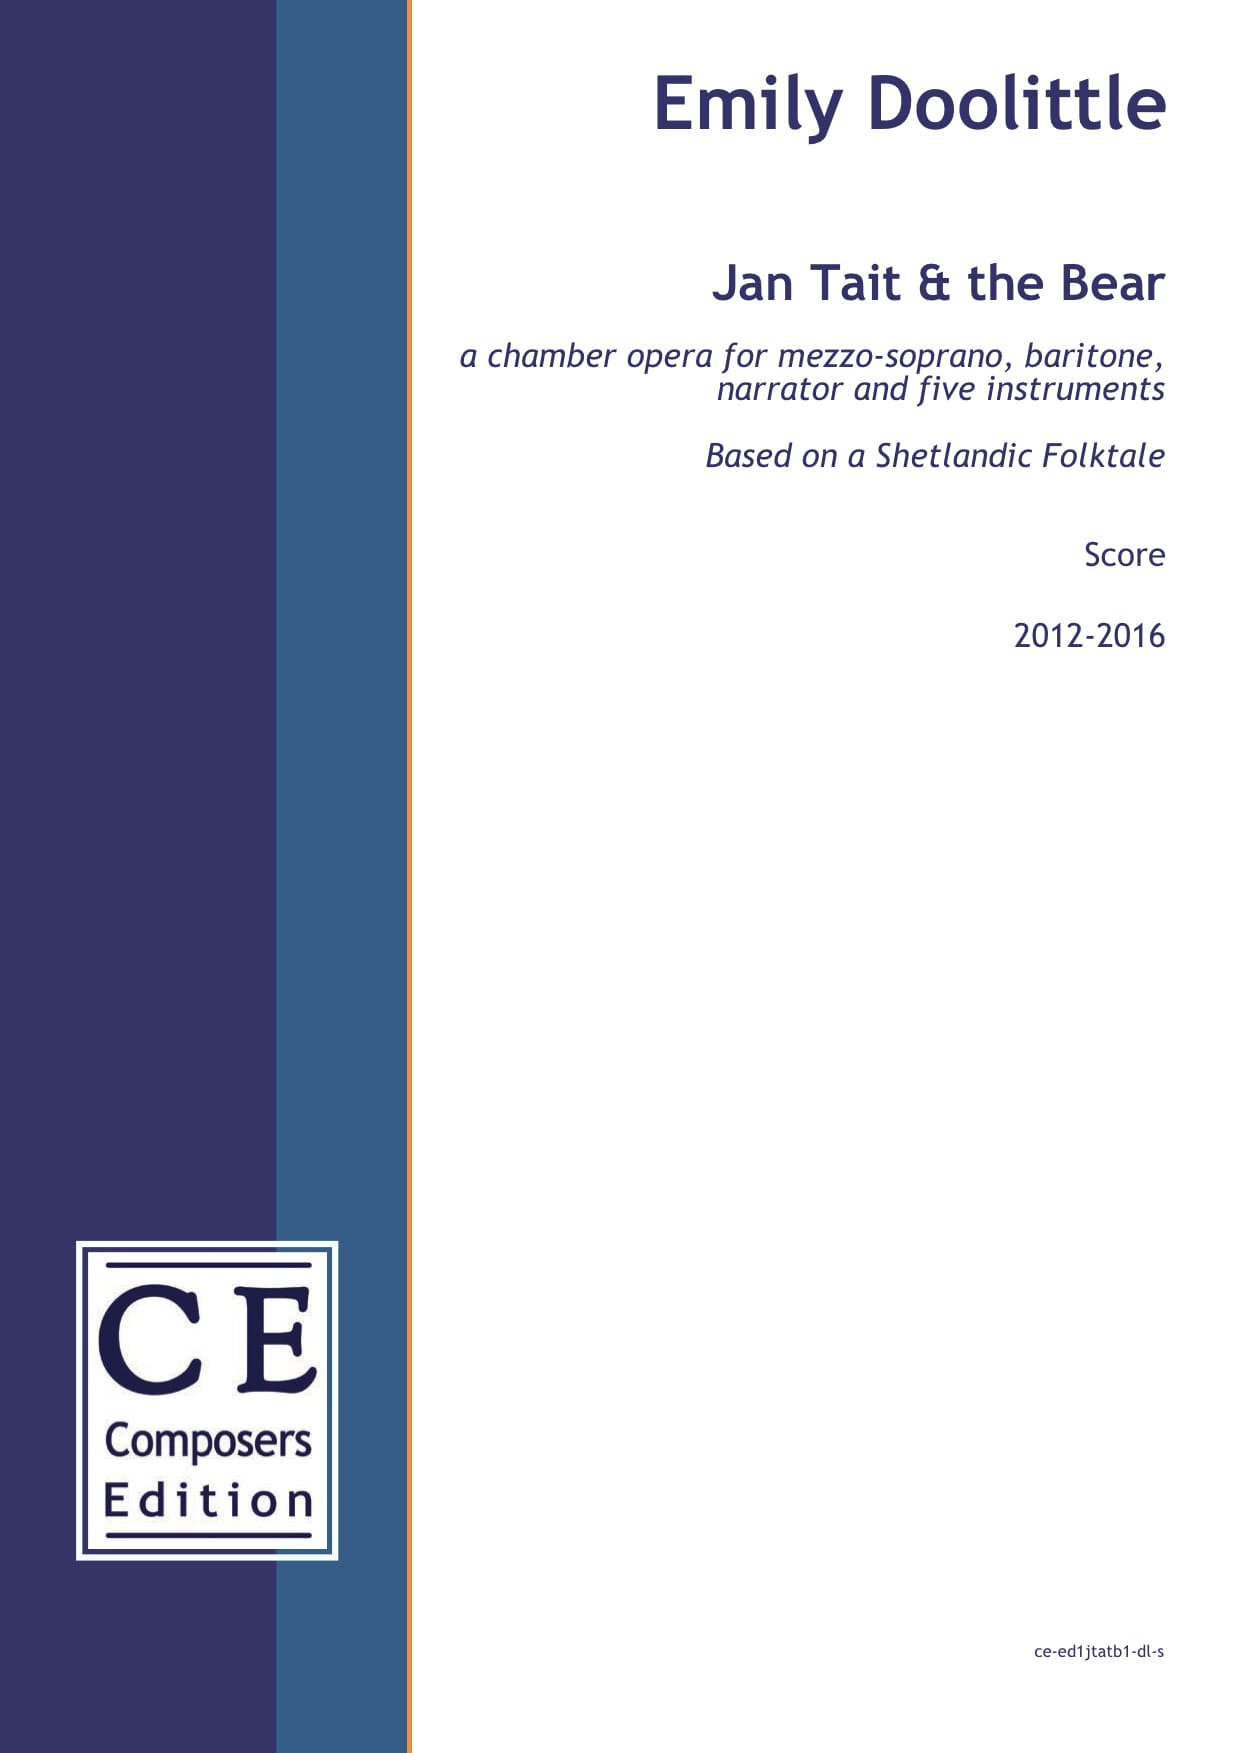 Emily Doolittle: Jan Tait & the Bear a chamber opera for mezzo-soprano, baritone, narrator and five instruments, based on a Shetlandic Folktale